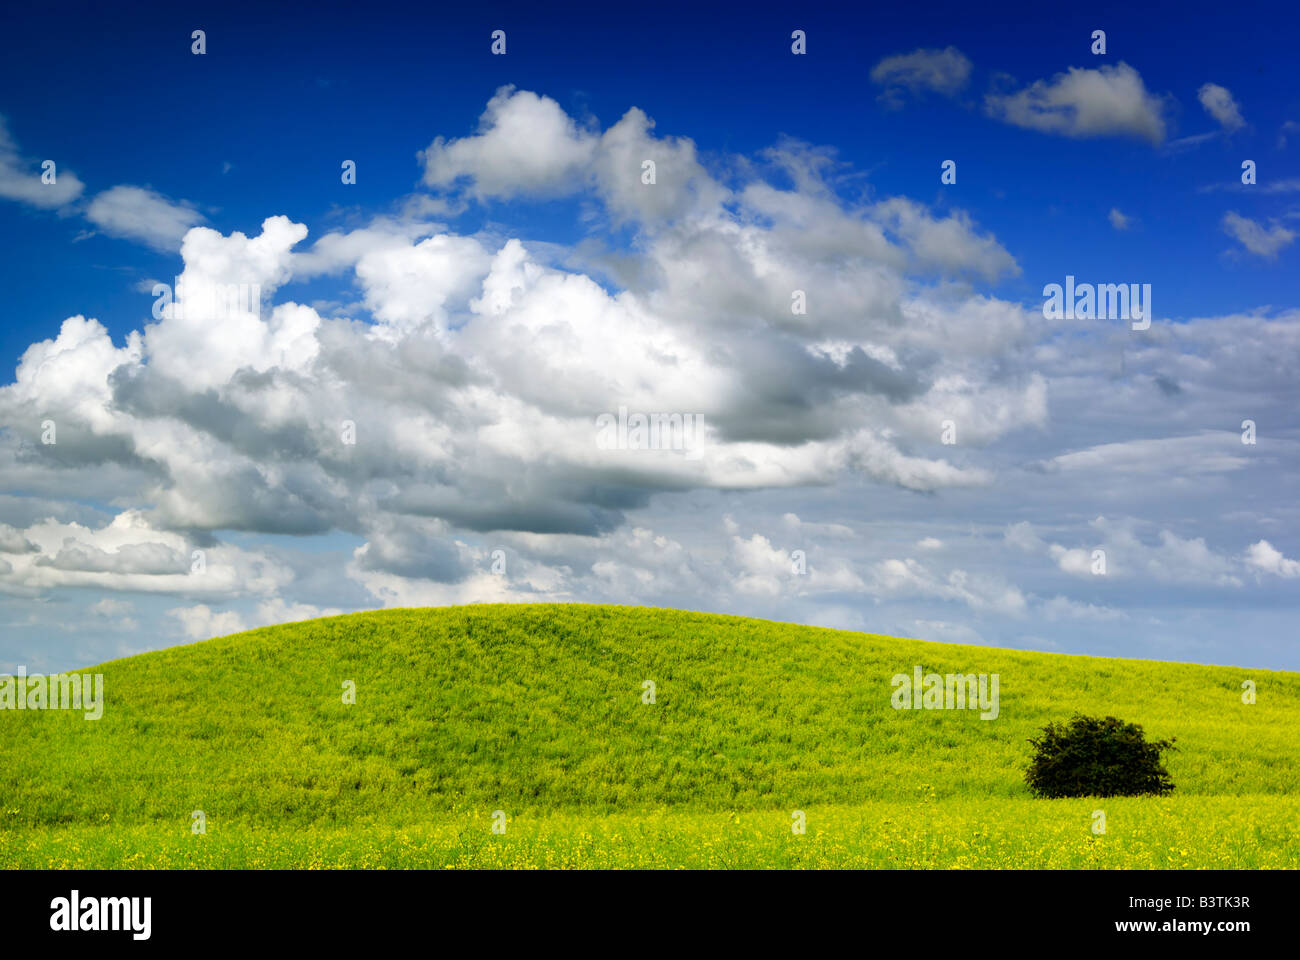 Summer landscape - saturated view of meadow. Europe, Poland. Adobe RGB (1998). Stock Photo